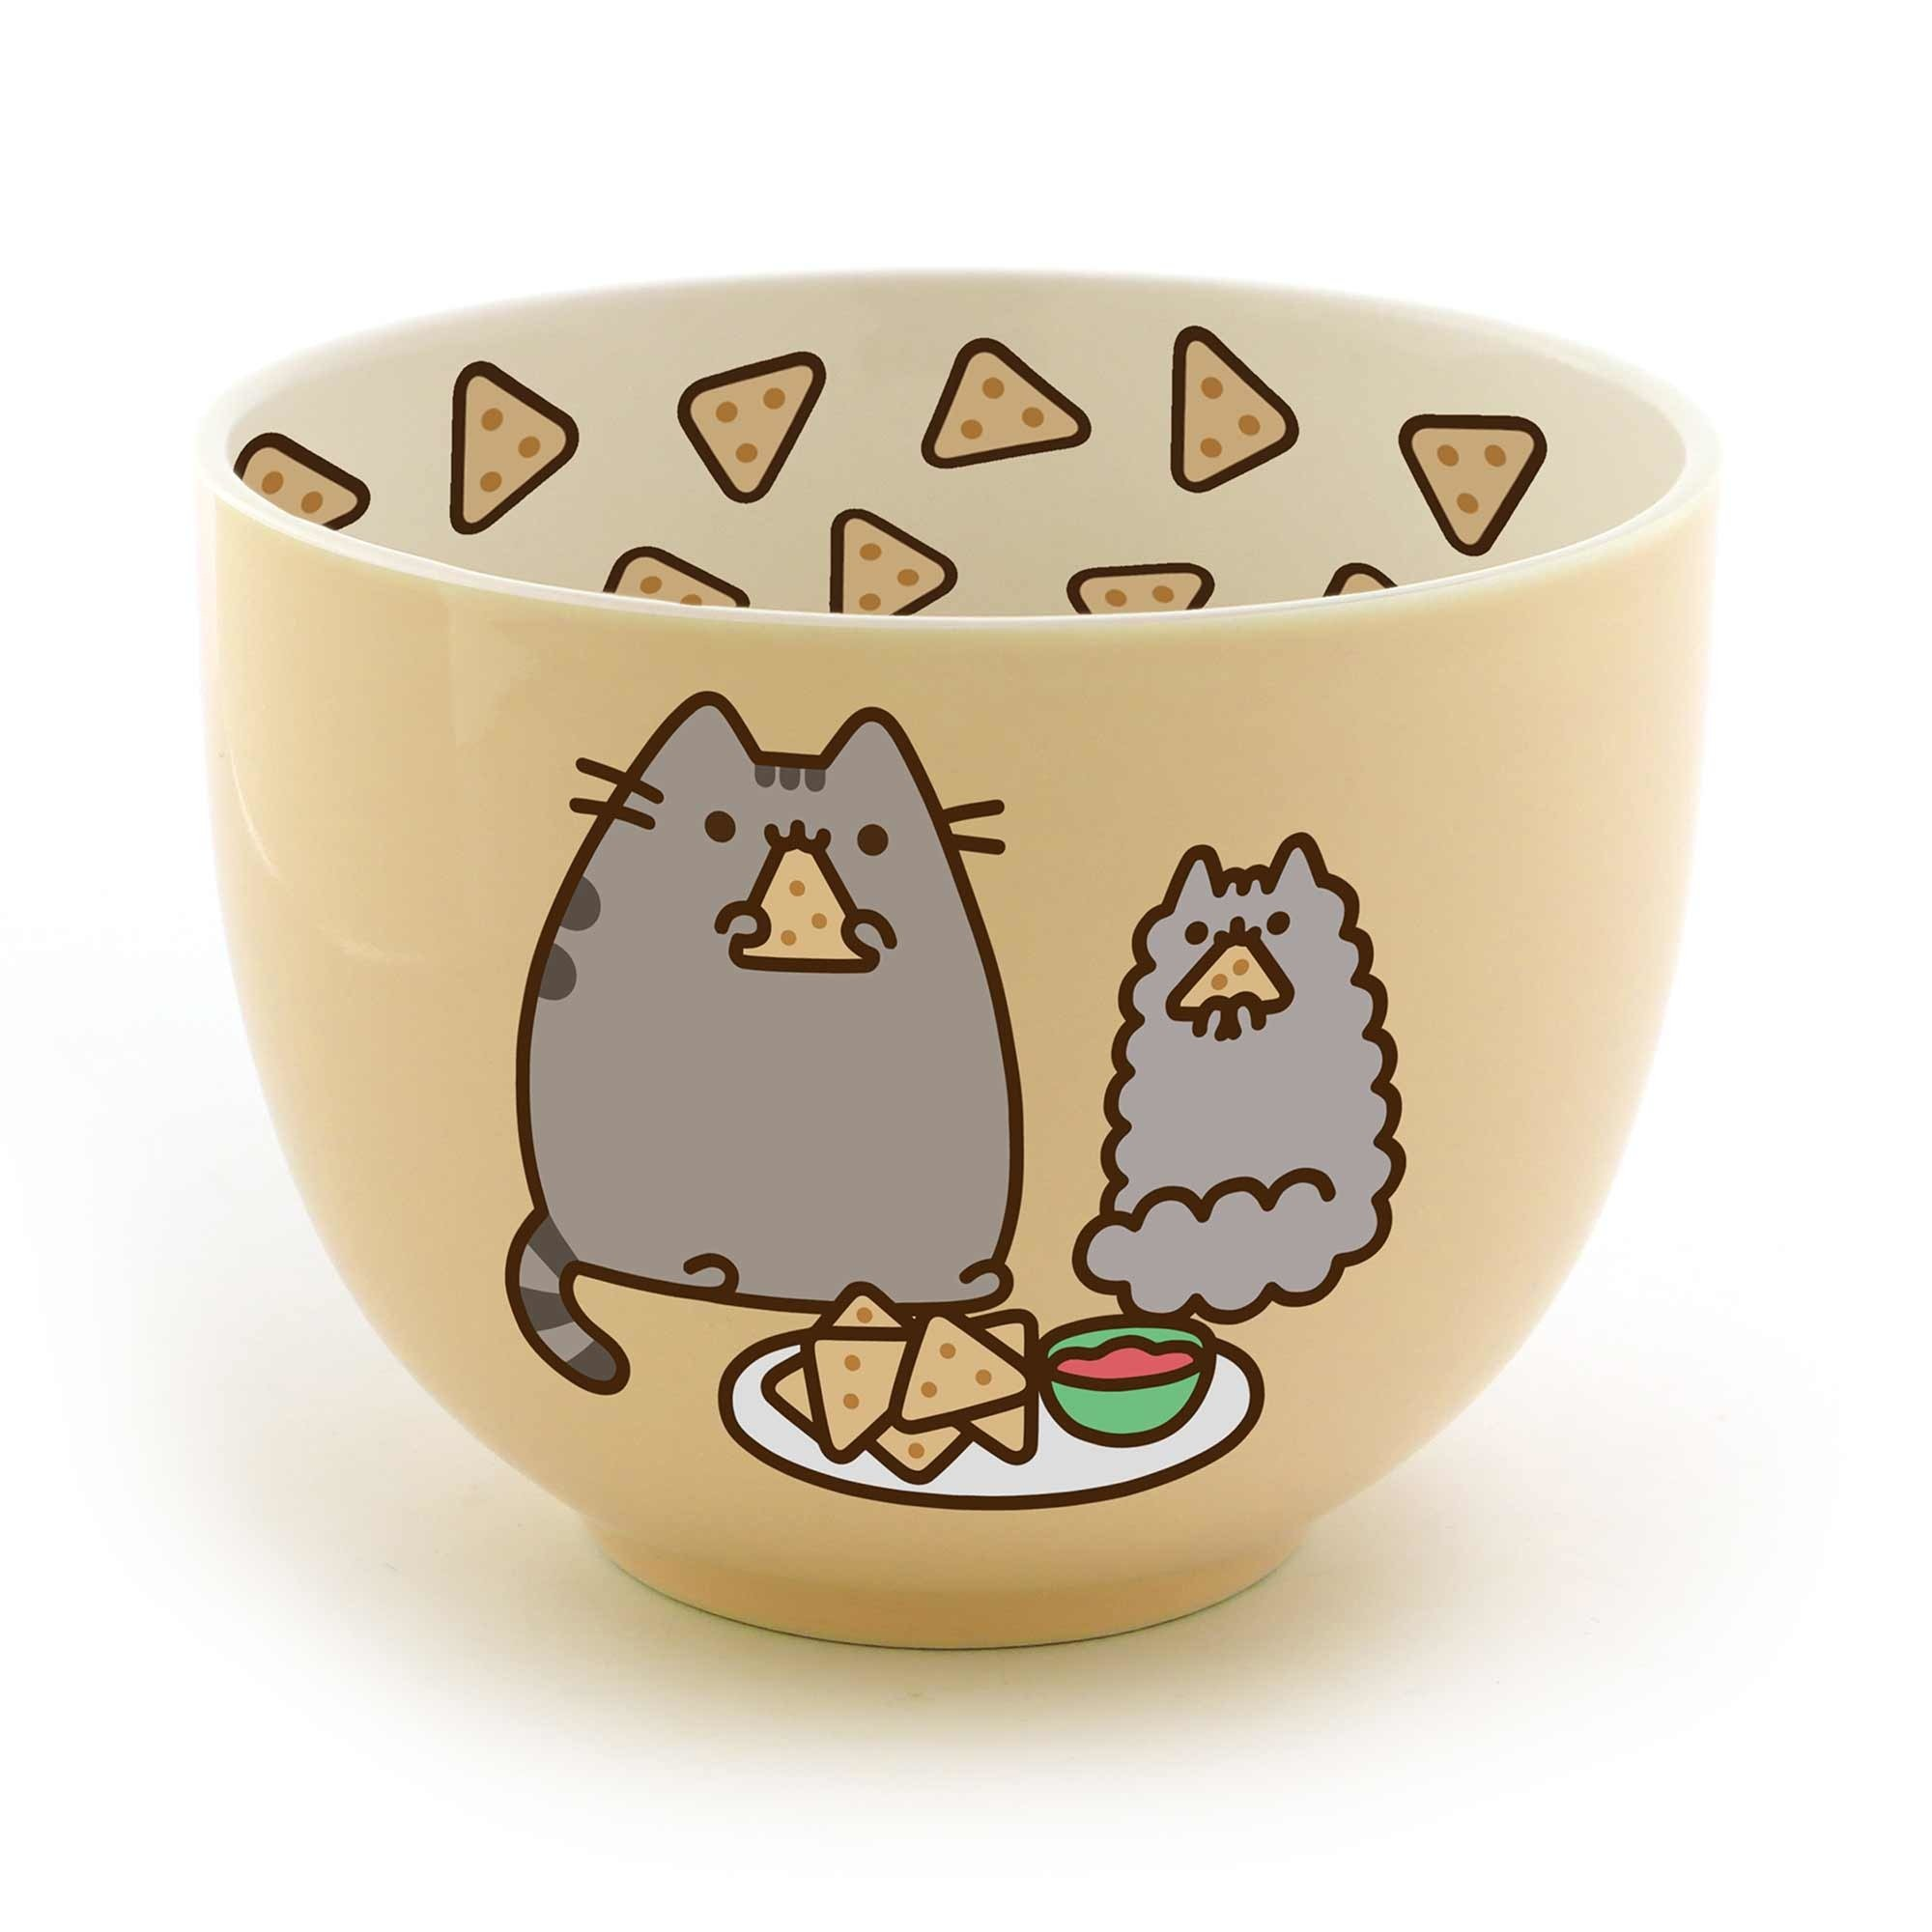 Enesco Pusheen by Our Name is Mud Stoneware Chips Snack Bowl, Yellow, 4''